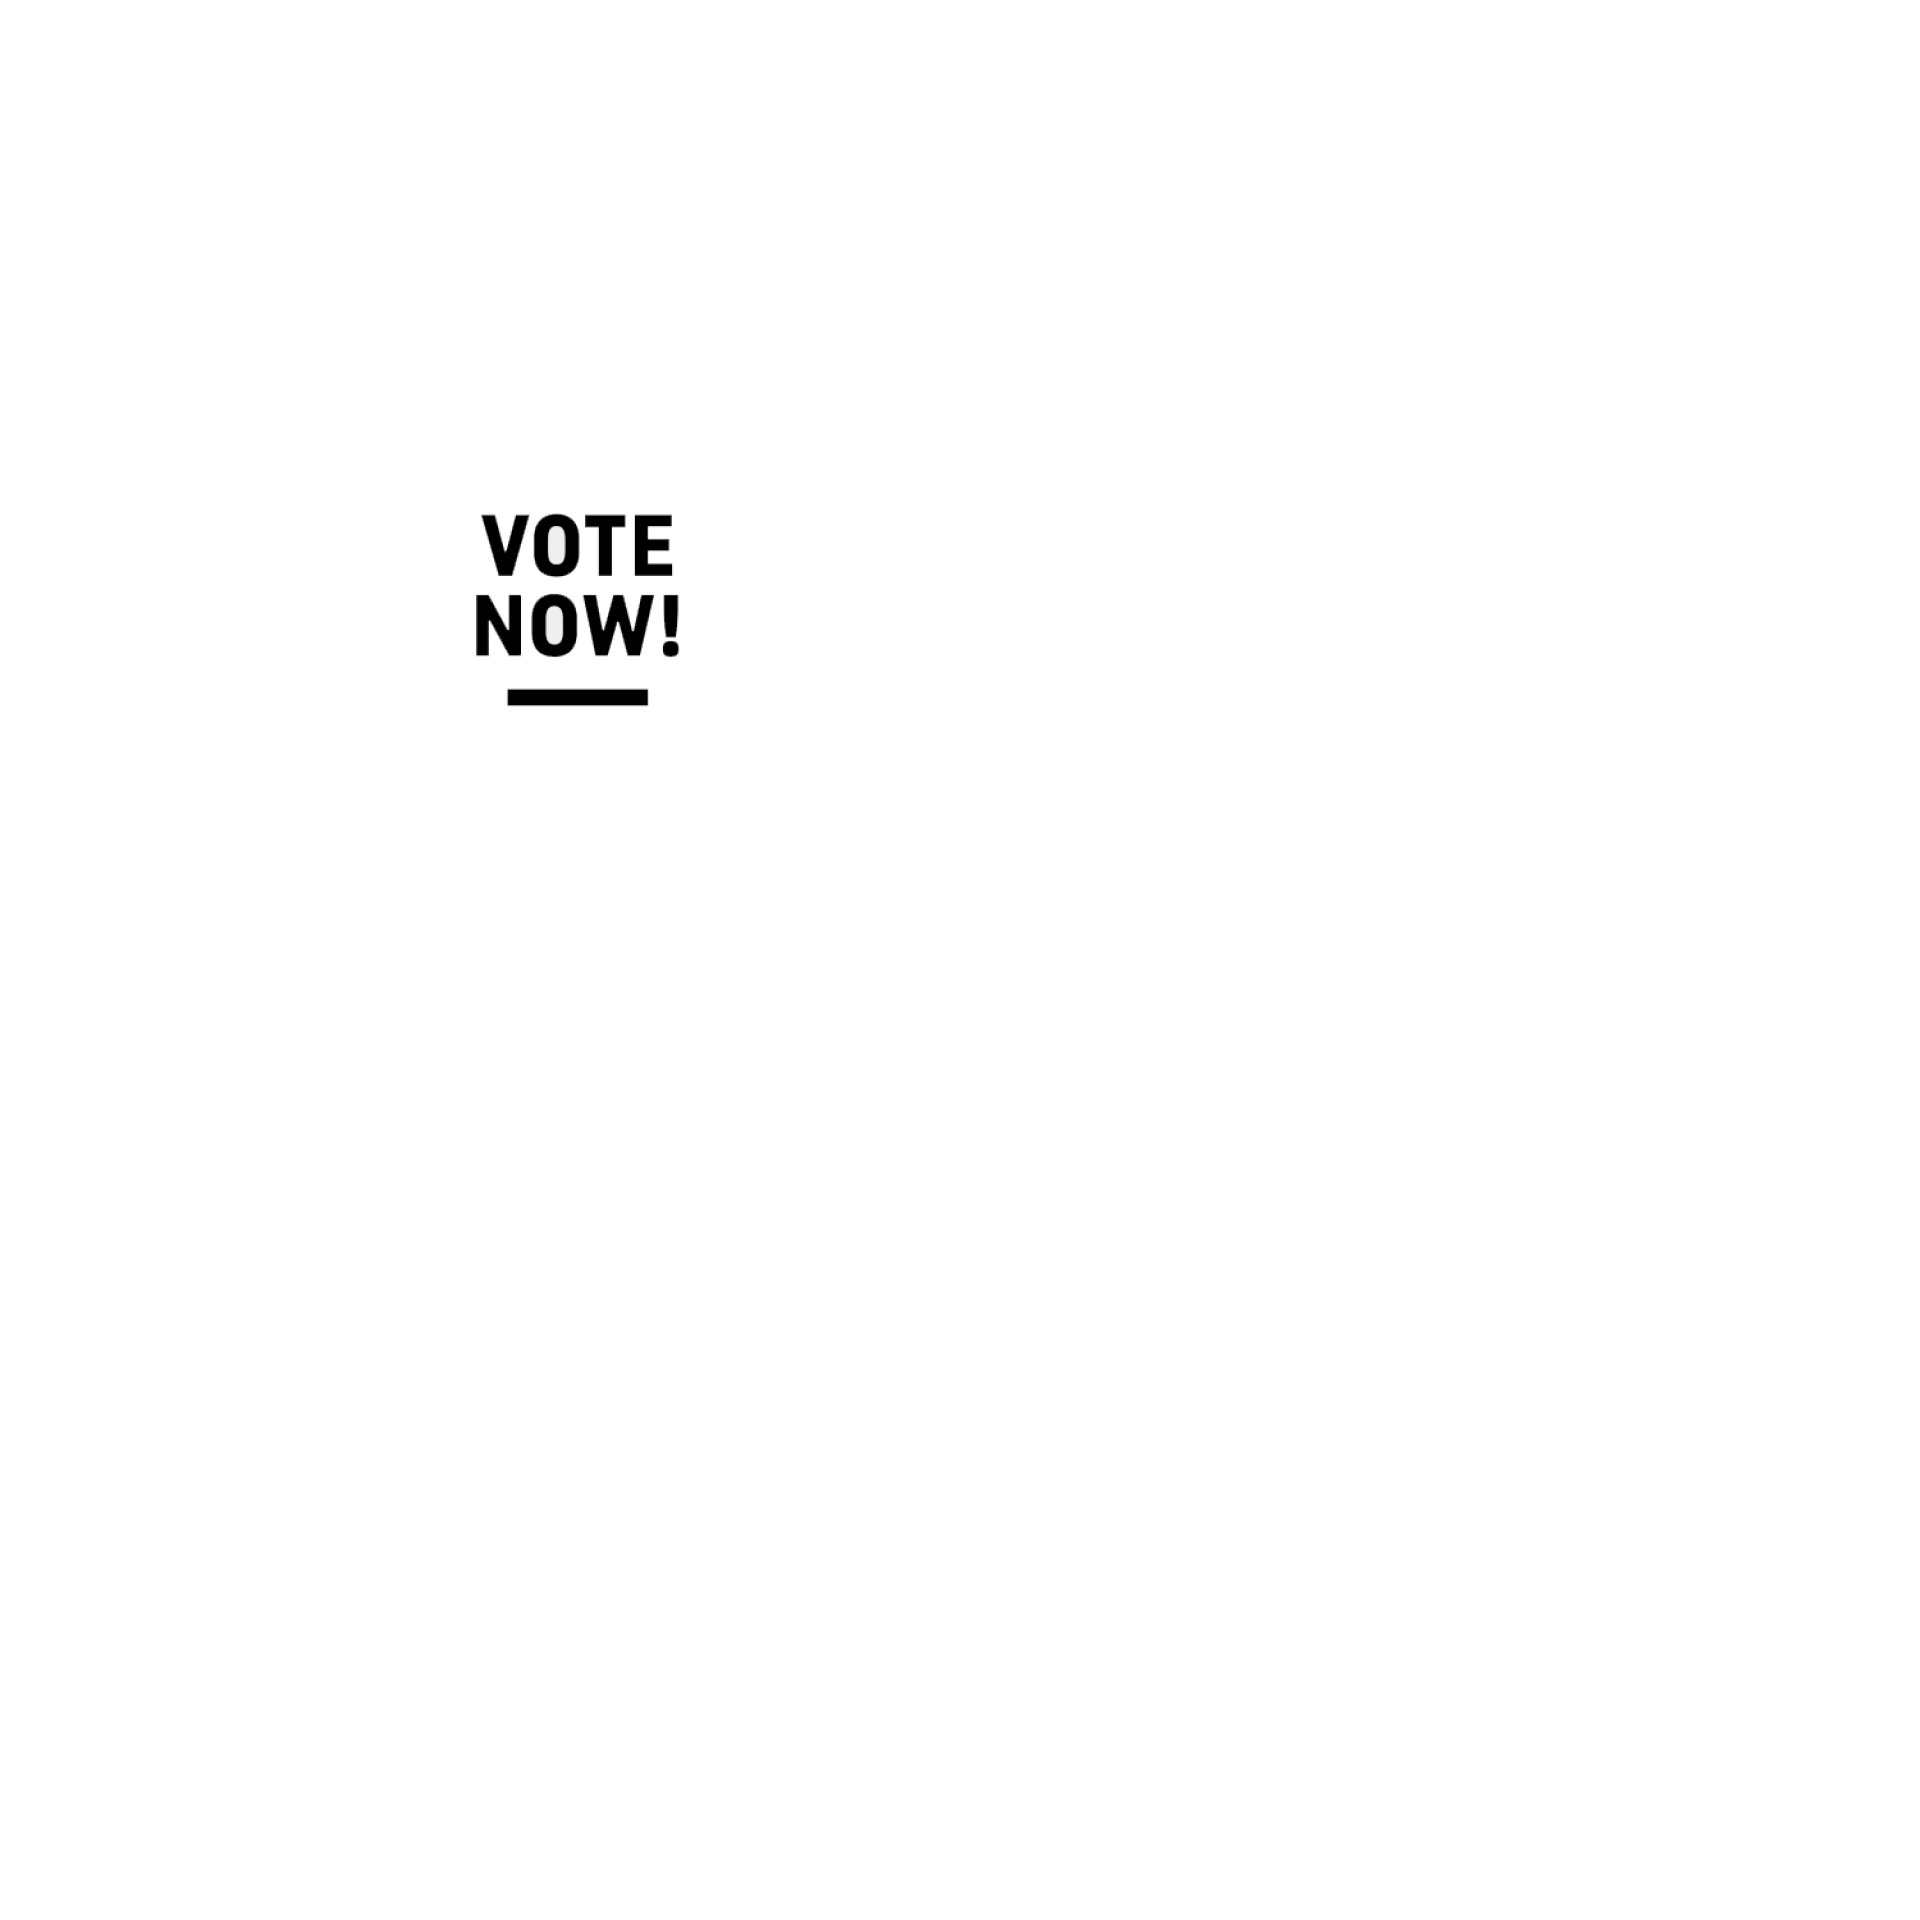 travel and leisure worlds best awards 2021